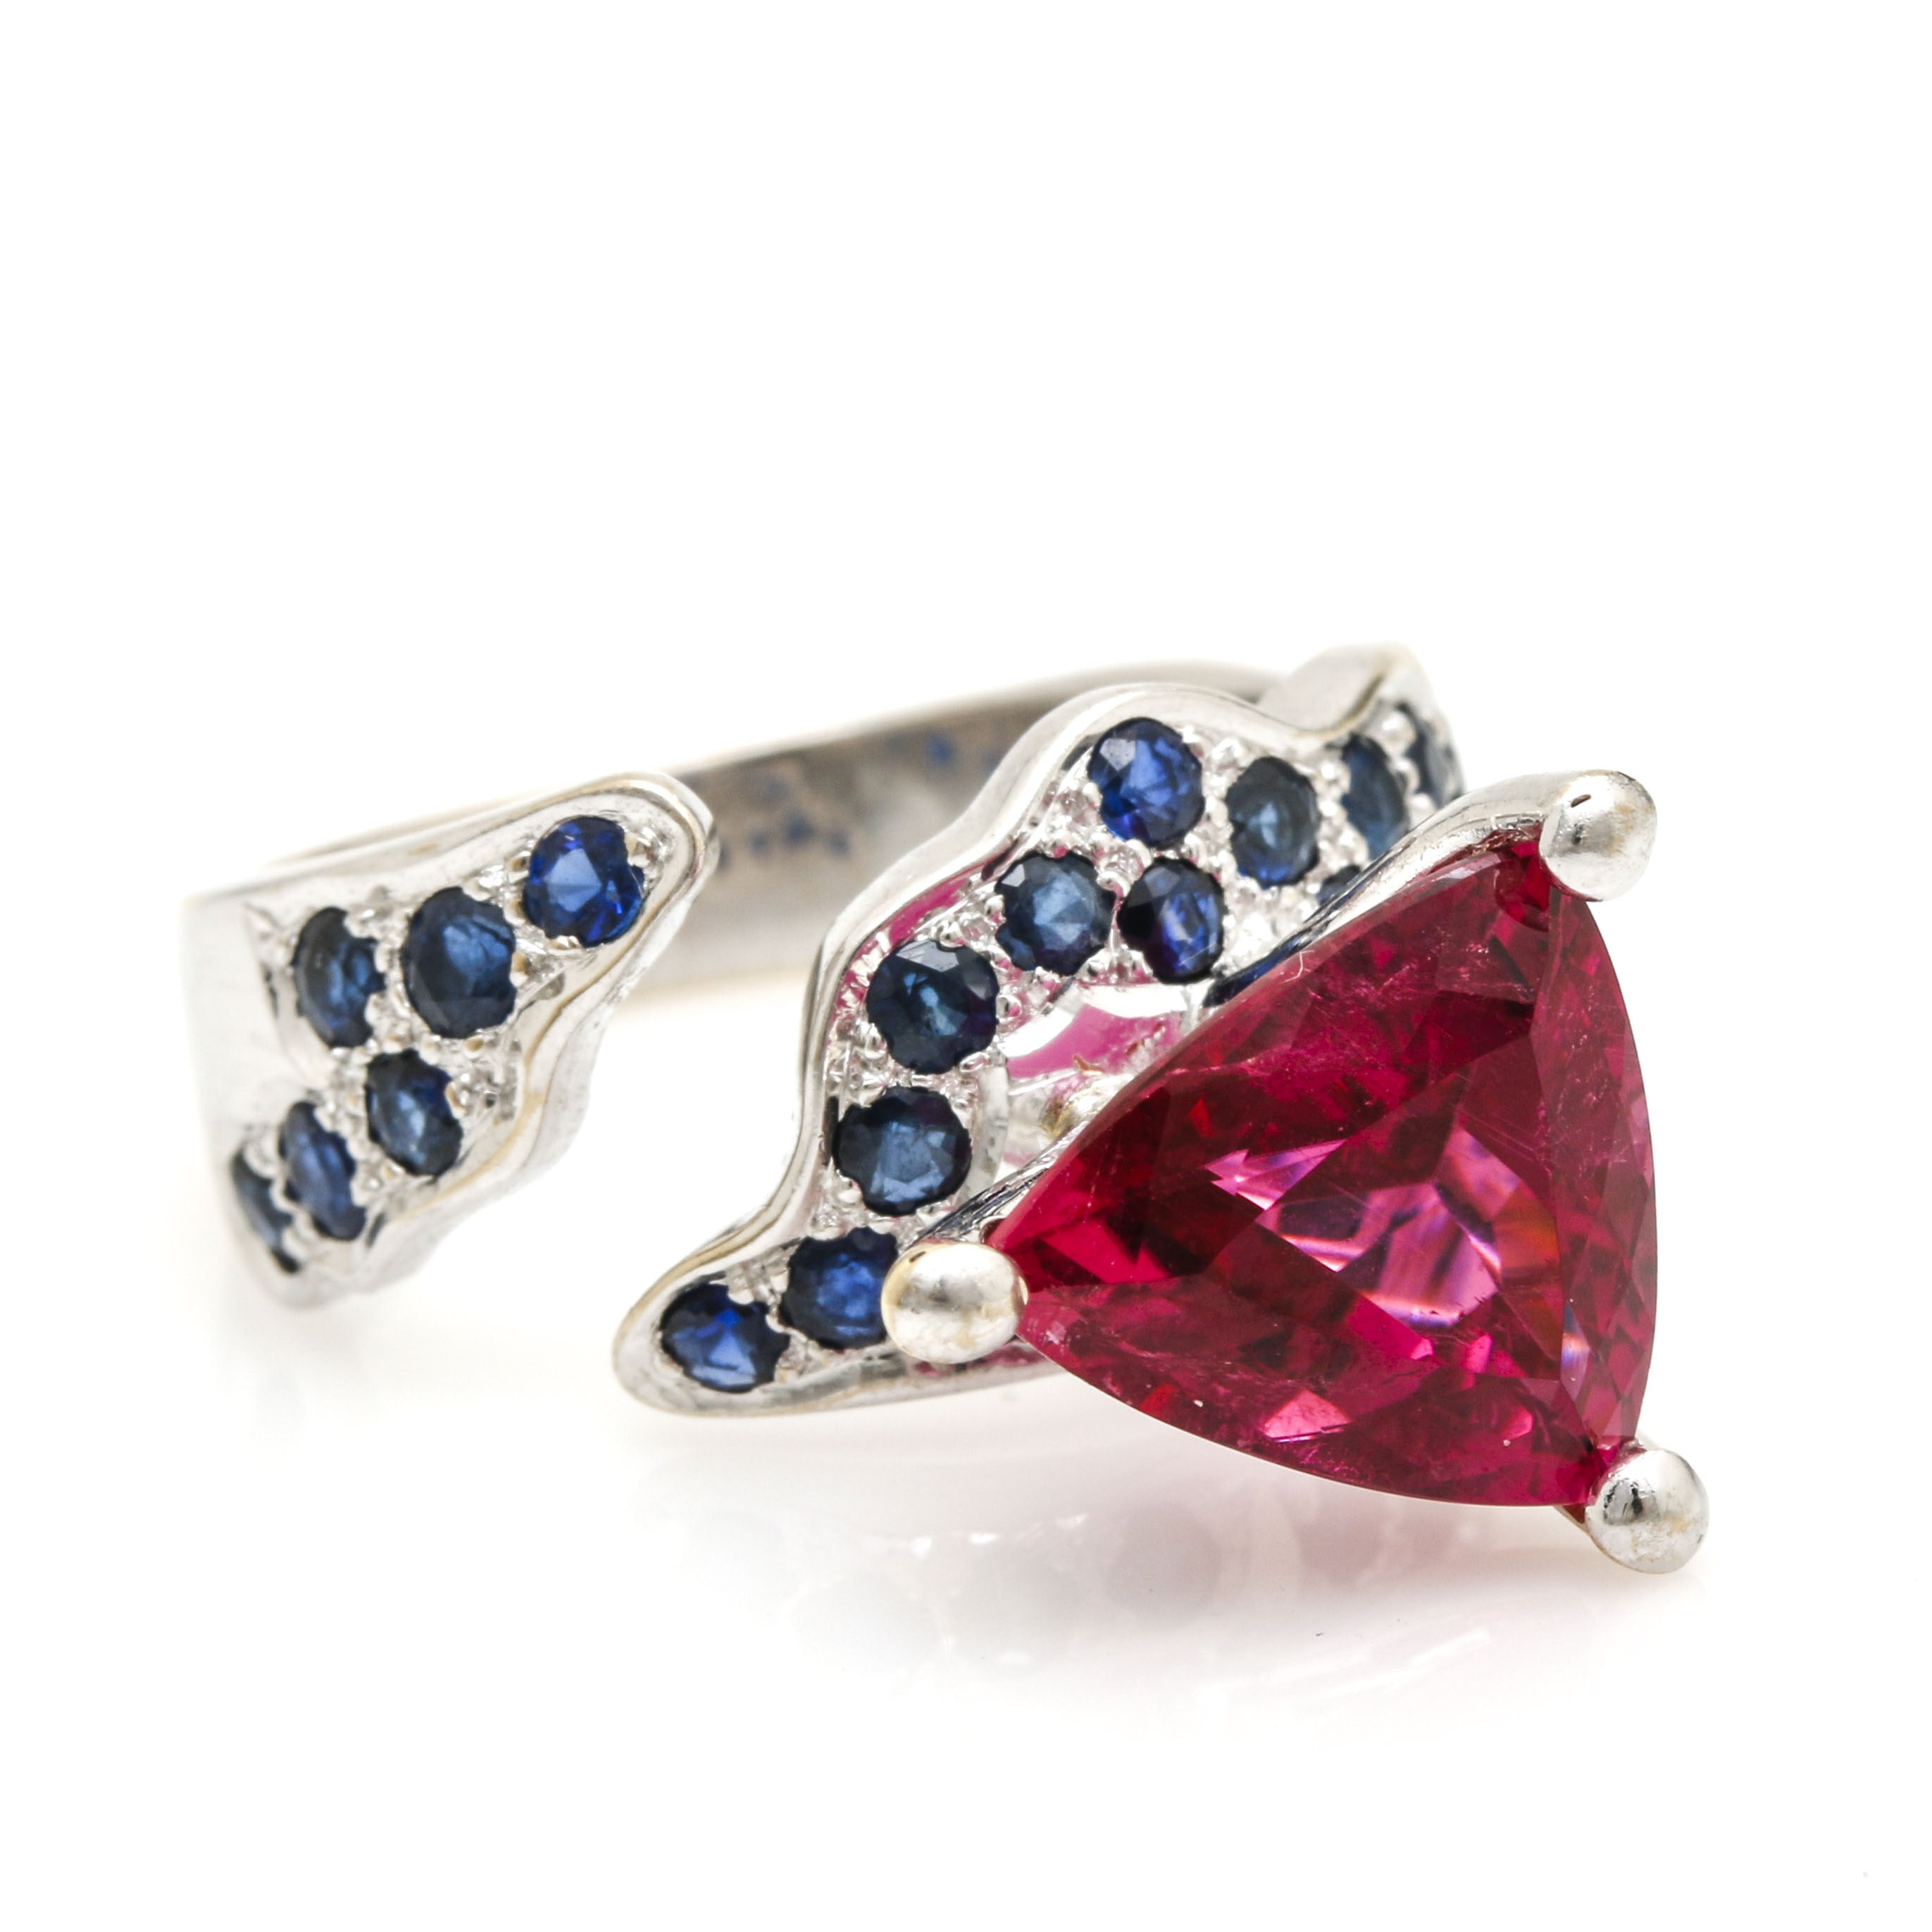 18K White Gold 3.81 CT Pink Tourmaline and Sapphire Contemporary Ring